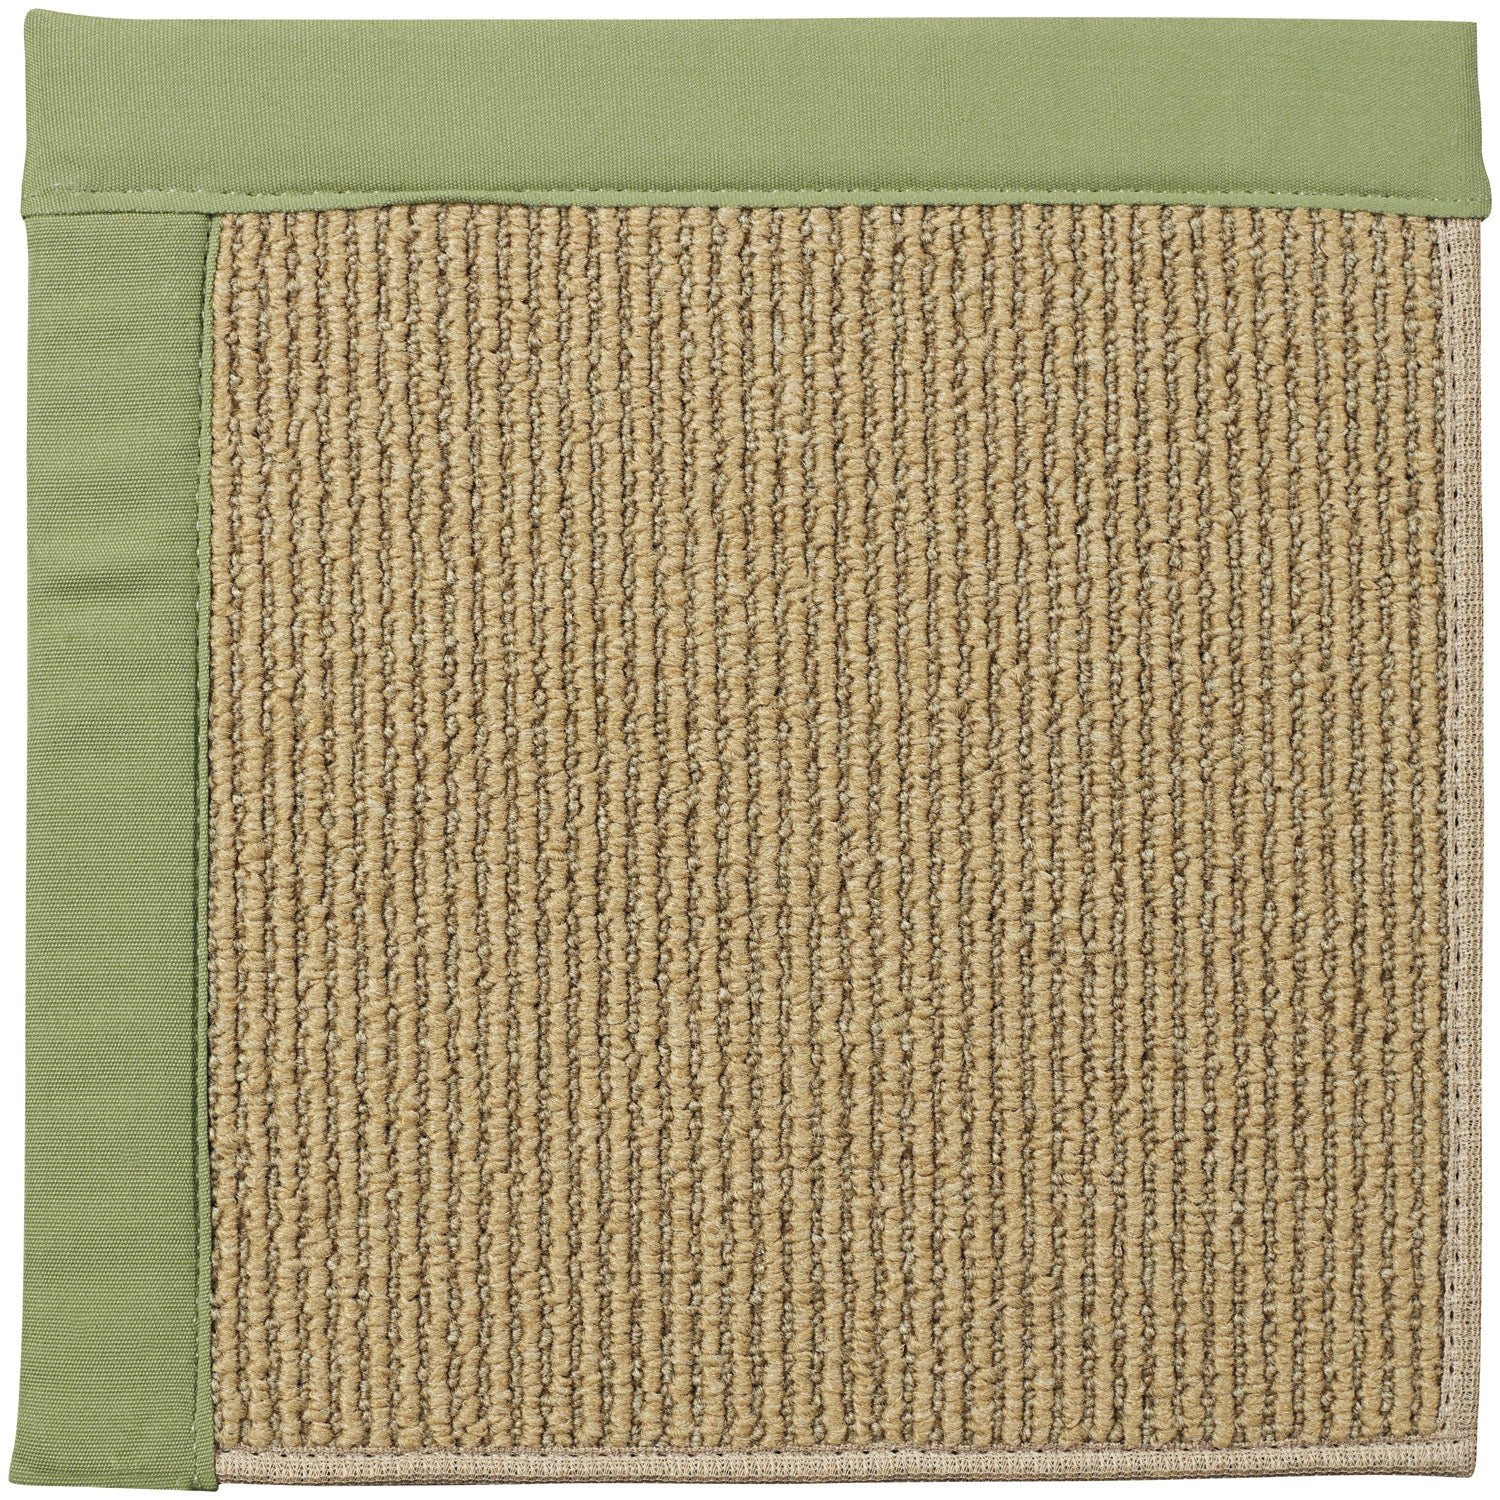 Capel Beachfront Shore 2036 Green 213 Area Rug main image